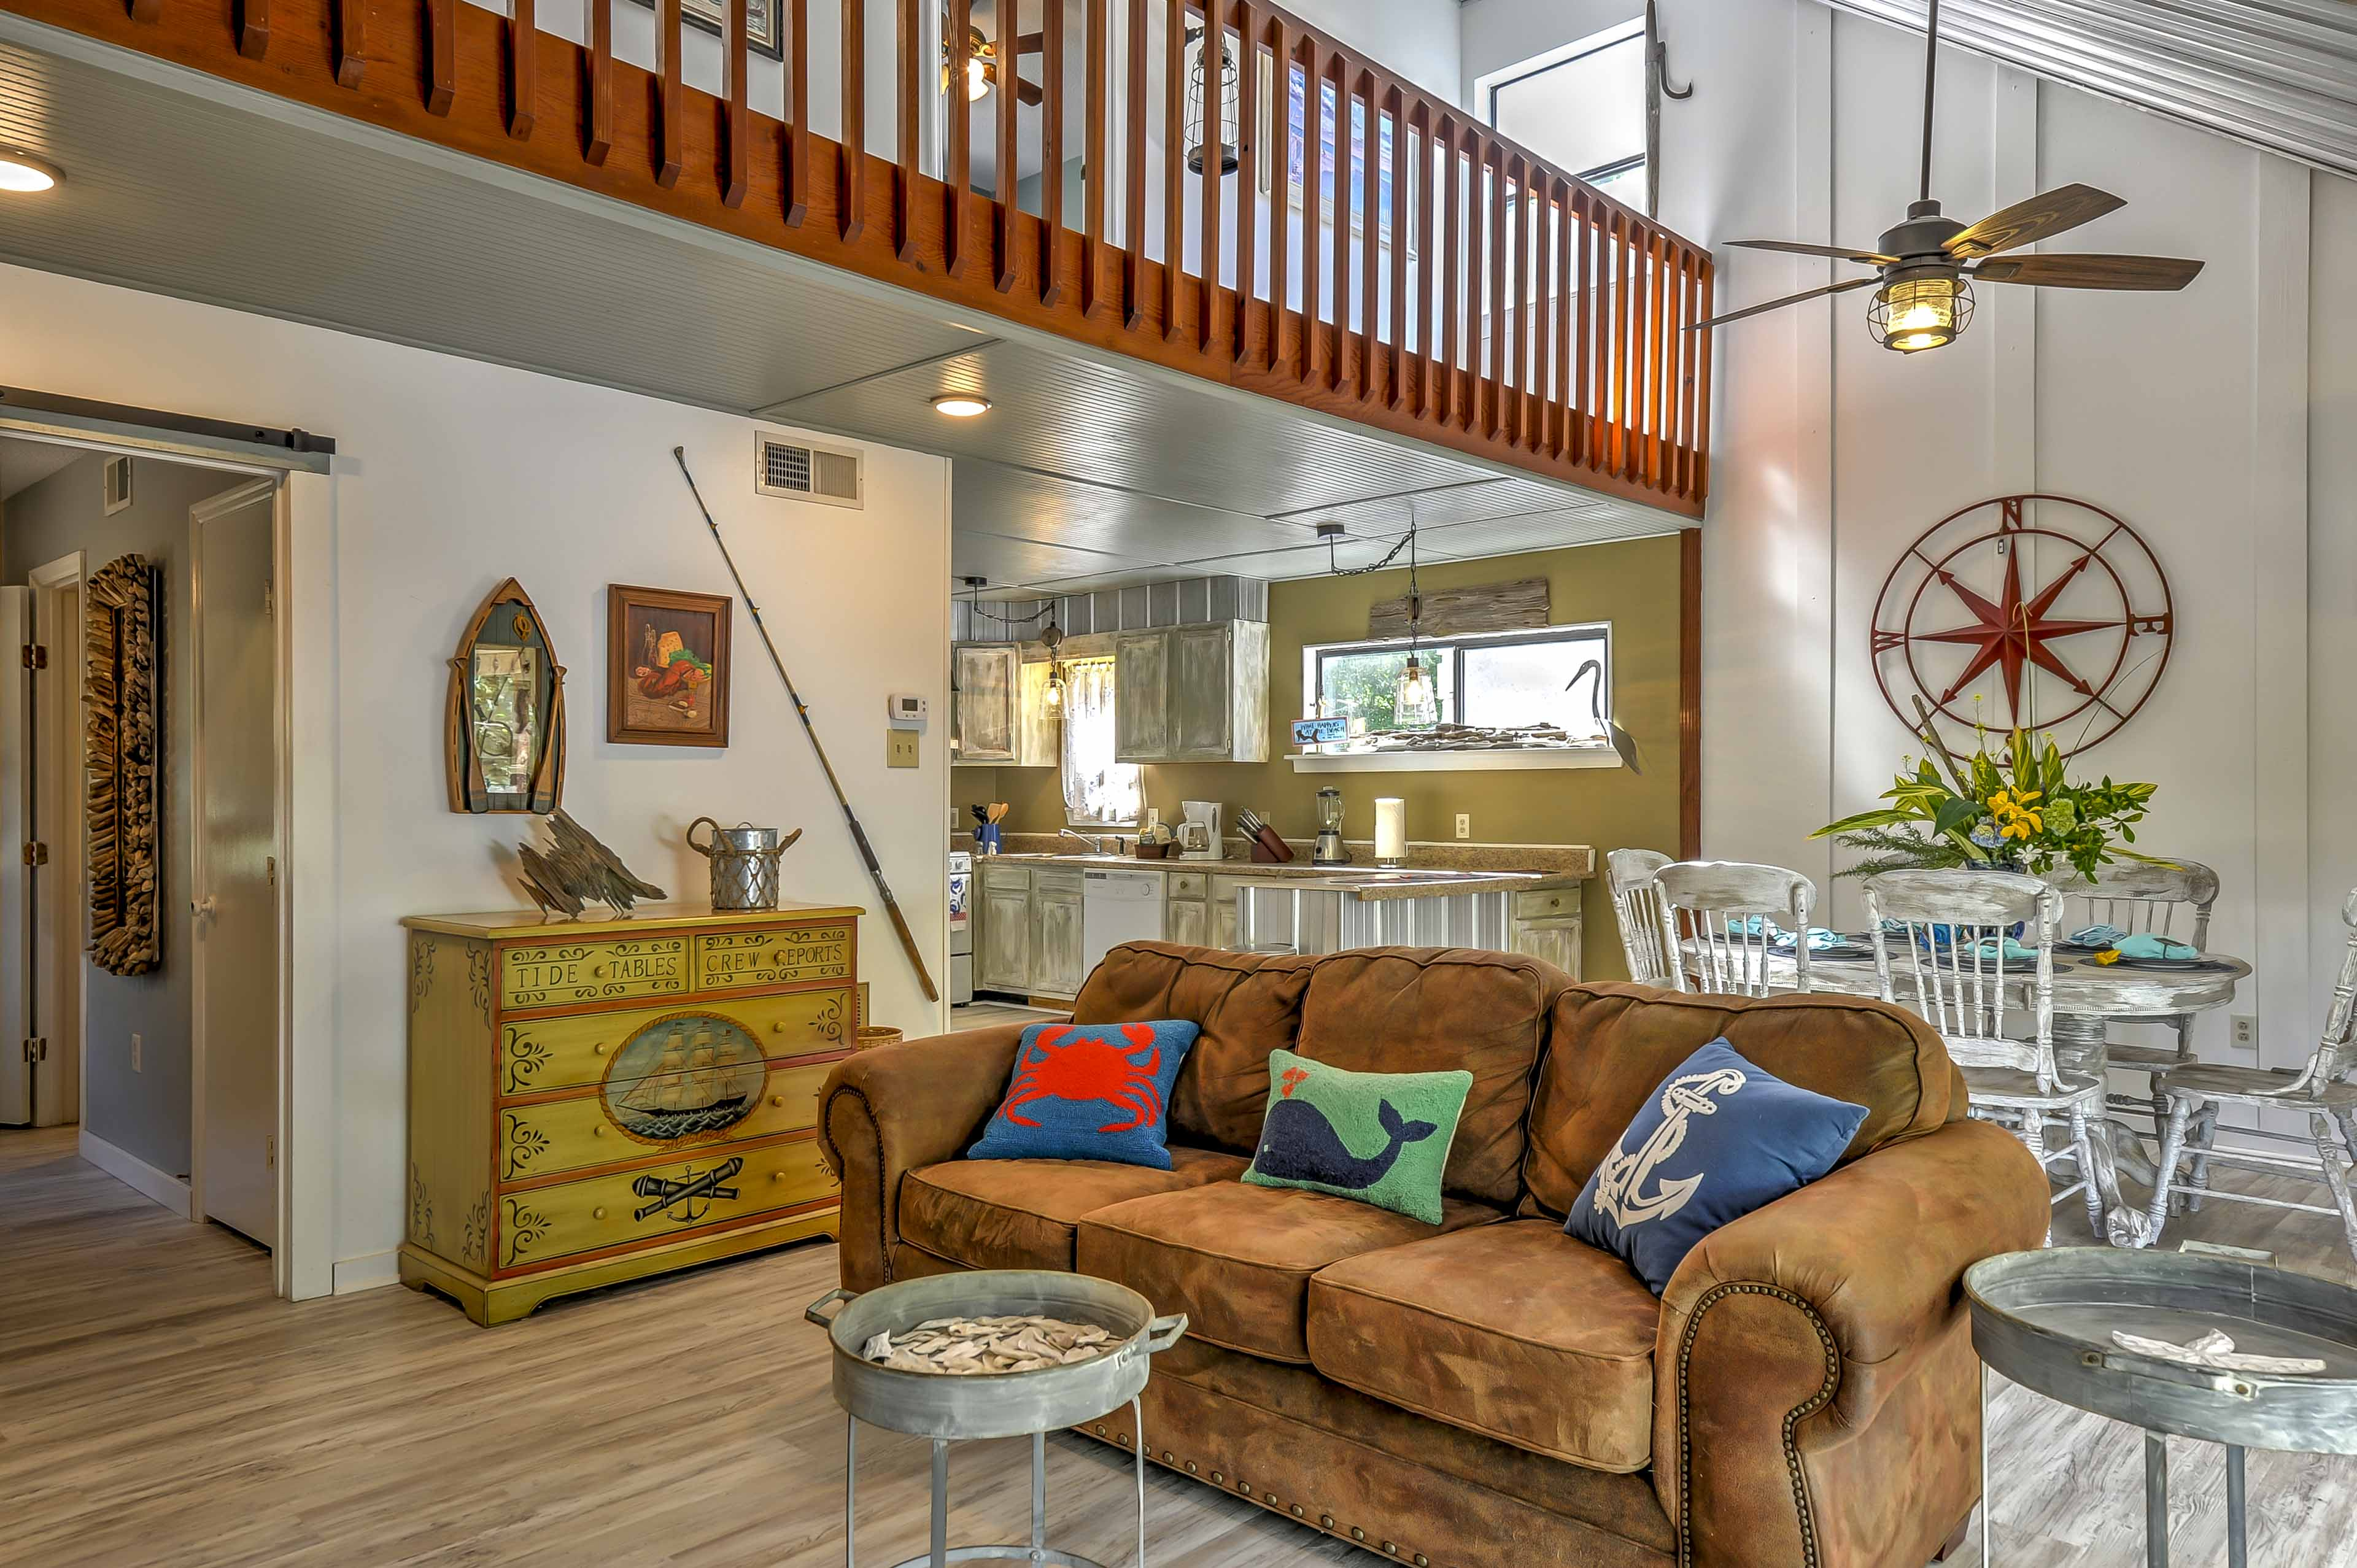 The spacious living area provides the ultimate home-away-from-home experience!